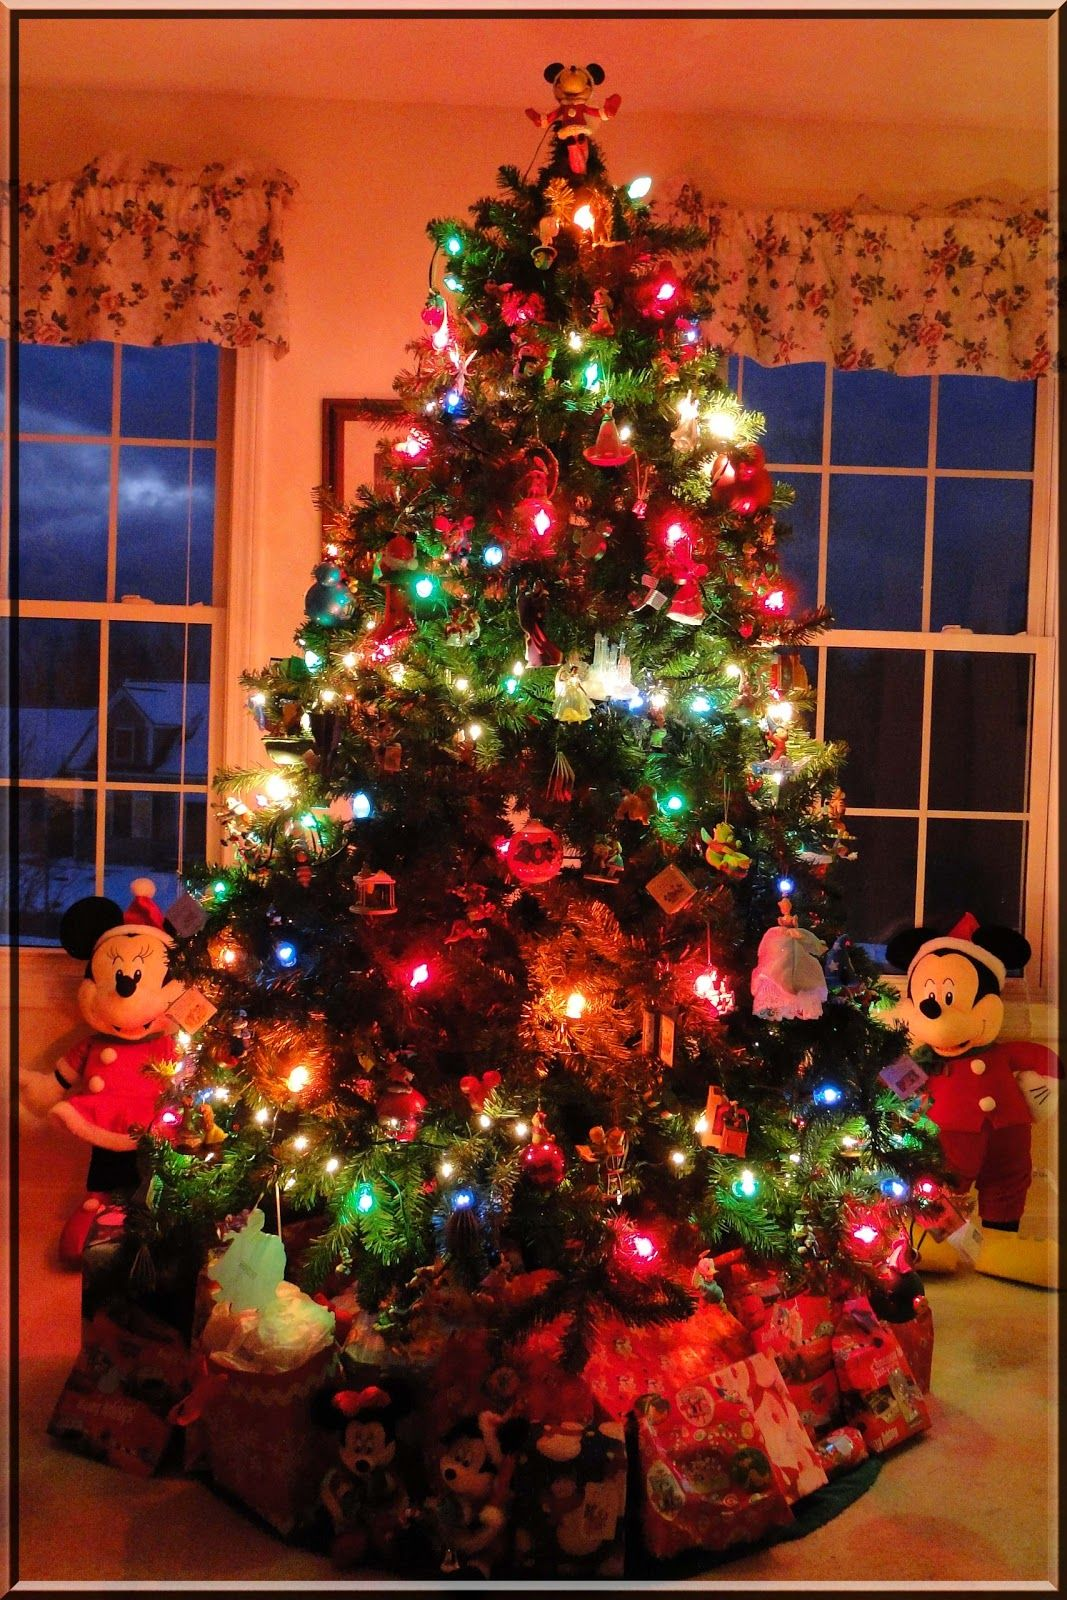 Disney christmas decorations for home - 45 Amazing Disney Christmas Tree Decorations Ideas